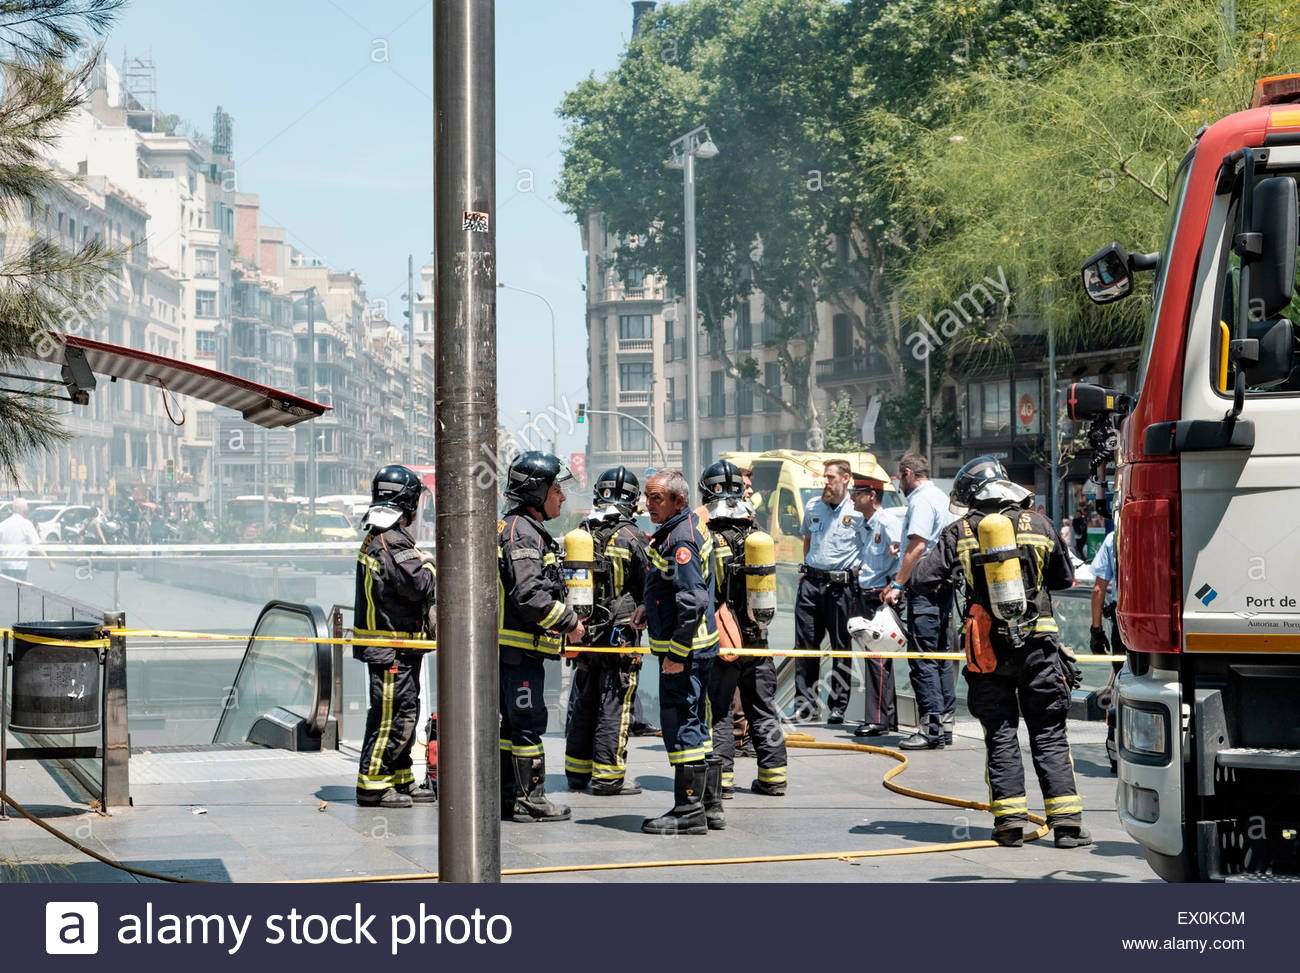 Firemen standing at the entrance to Universitat station on the Barcelona Metro during a fire - Stock Image